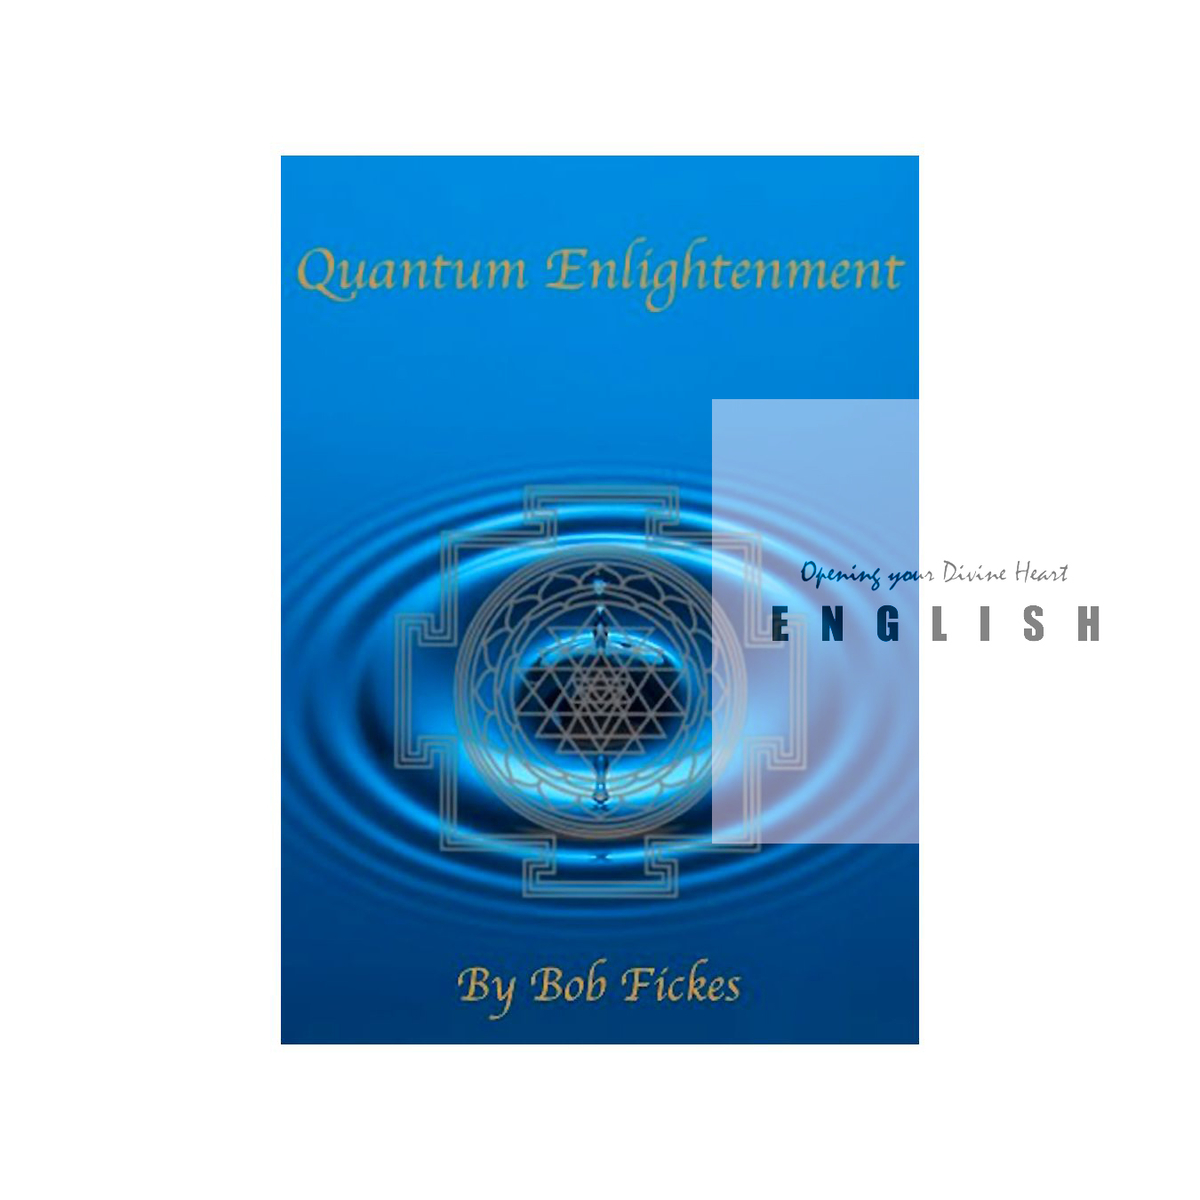 QUANTUM ENLIGHTENMENT